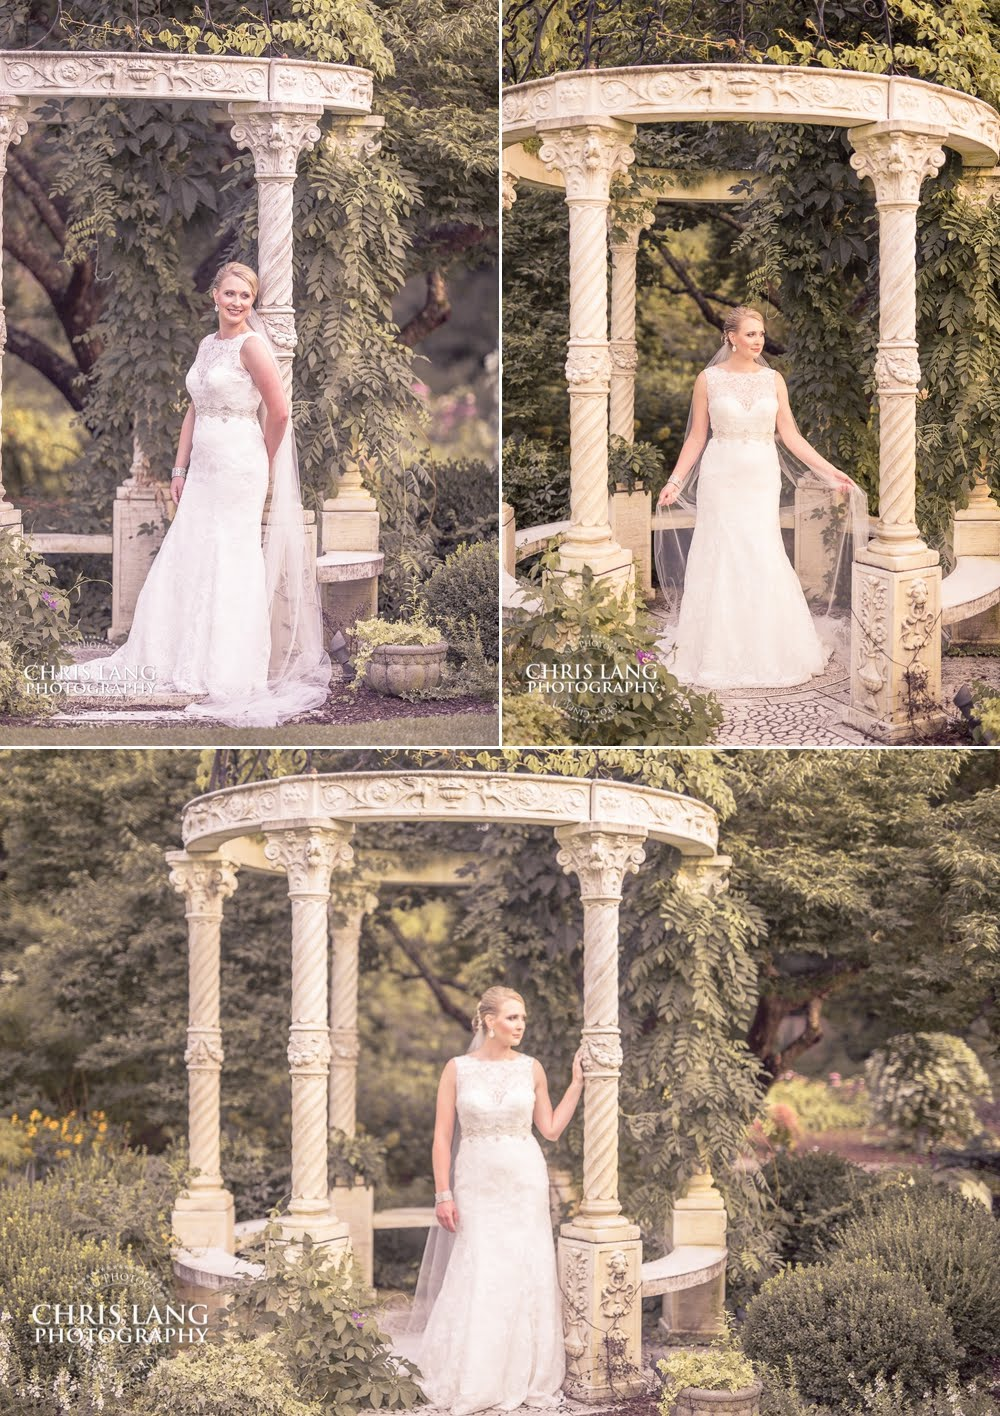 Picture of Bride in wedding dress a the Arboretum in Wilmington NC - Bridal Portraits - Bridal Picture Ideas